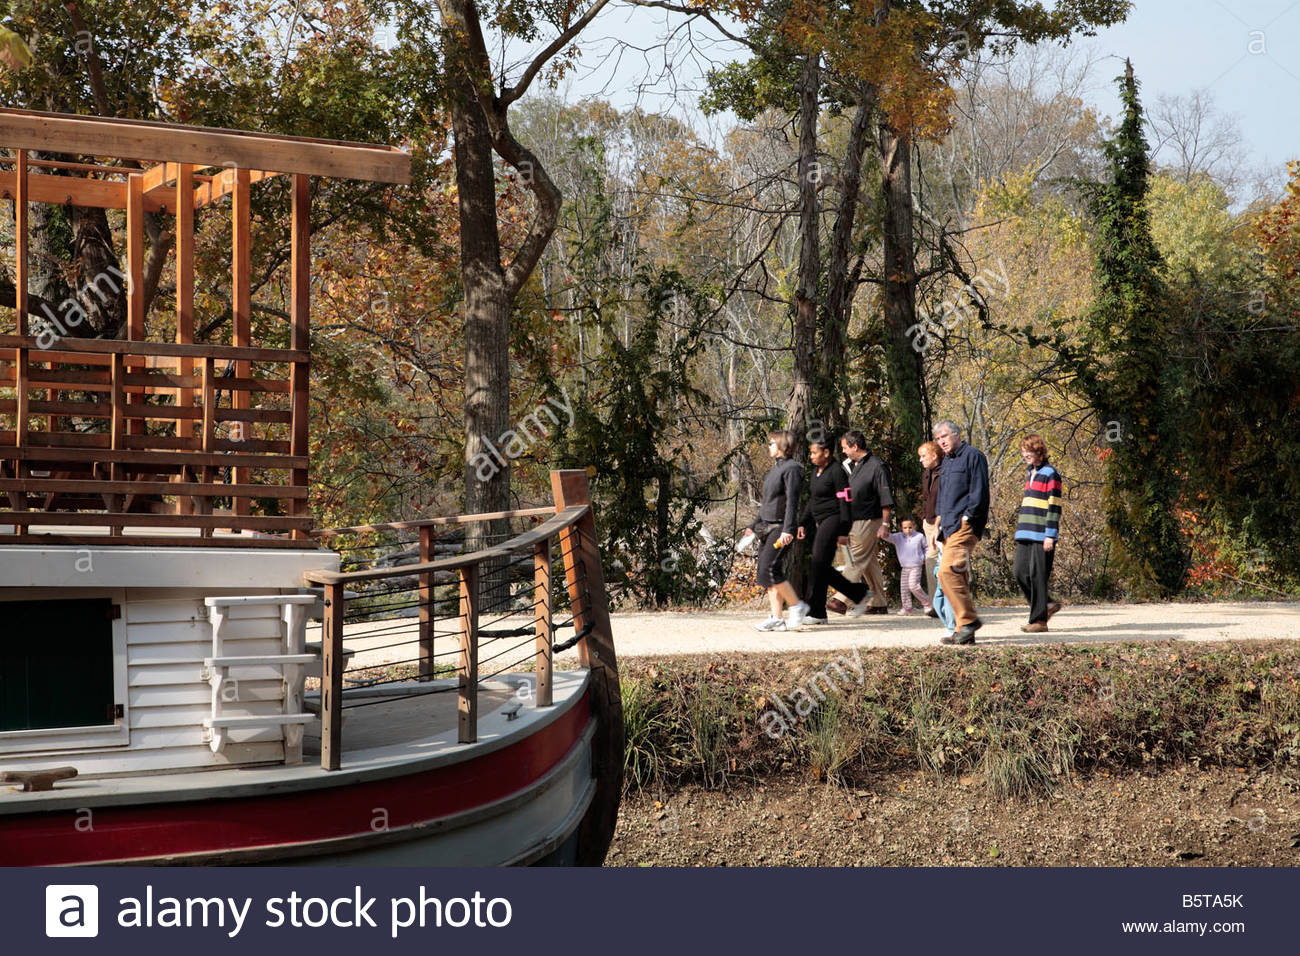 Hikers on the C&O Canal towpath in Maryland pass a drydocked canal boat. - Stock Image